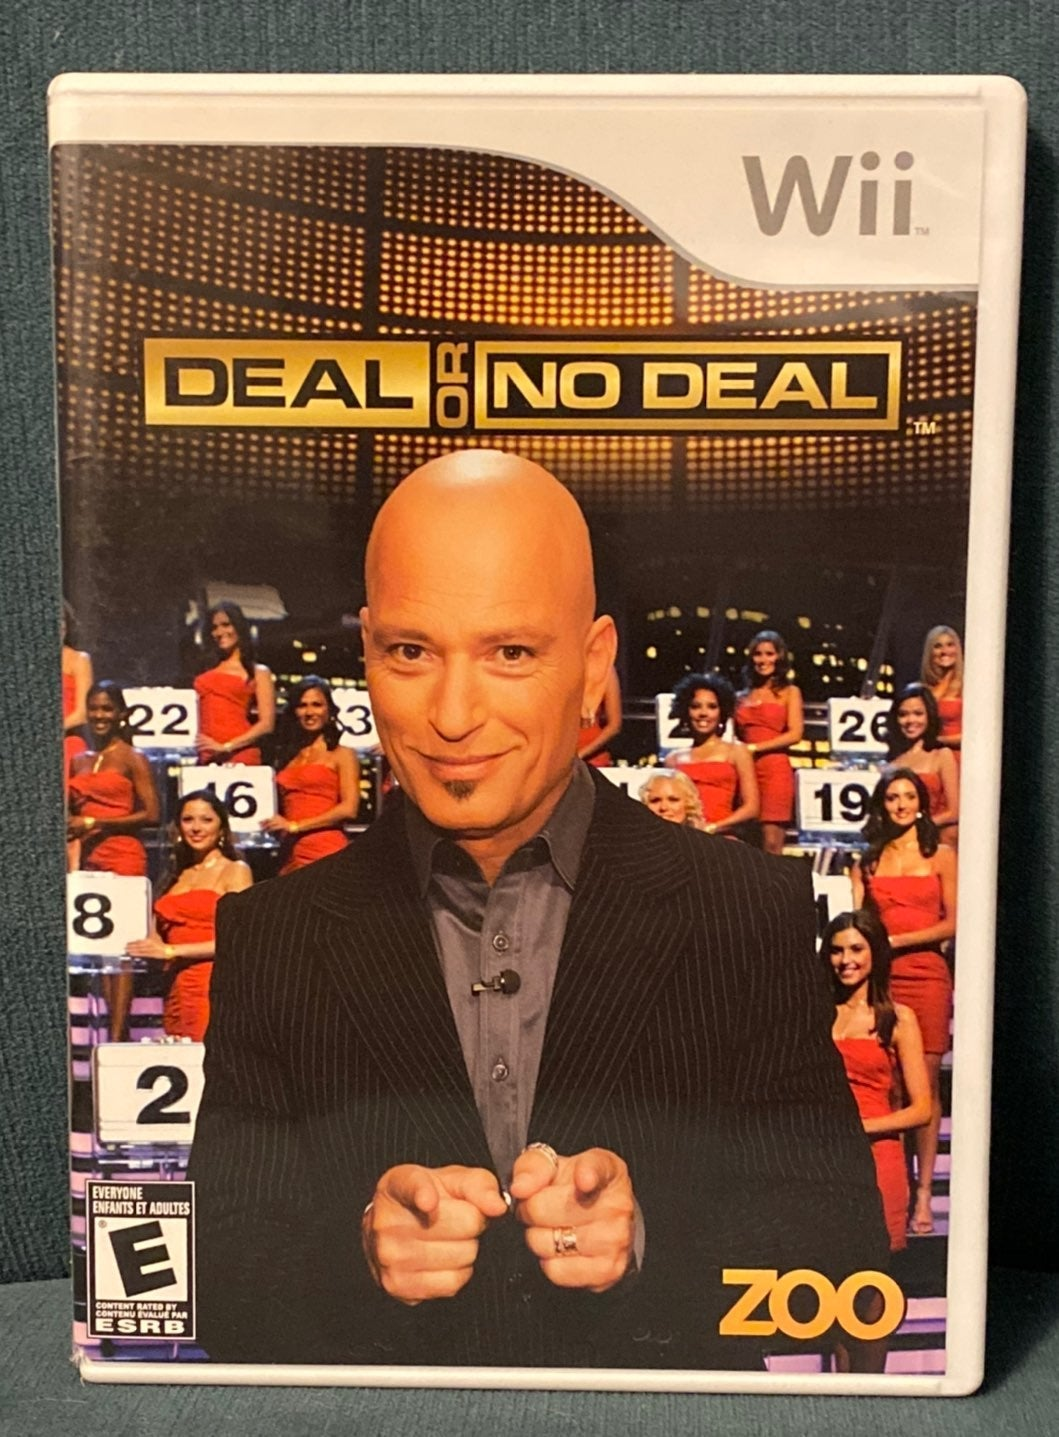 Deal or No Deal Nintendo Wii Game